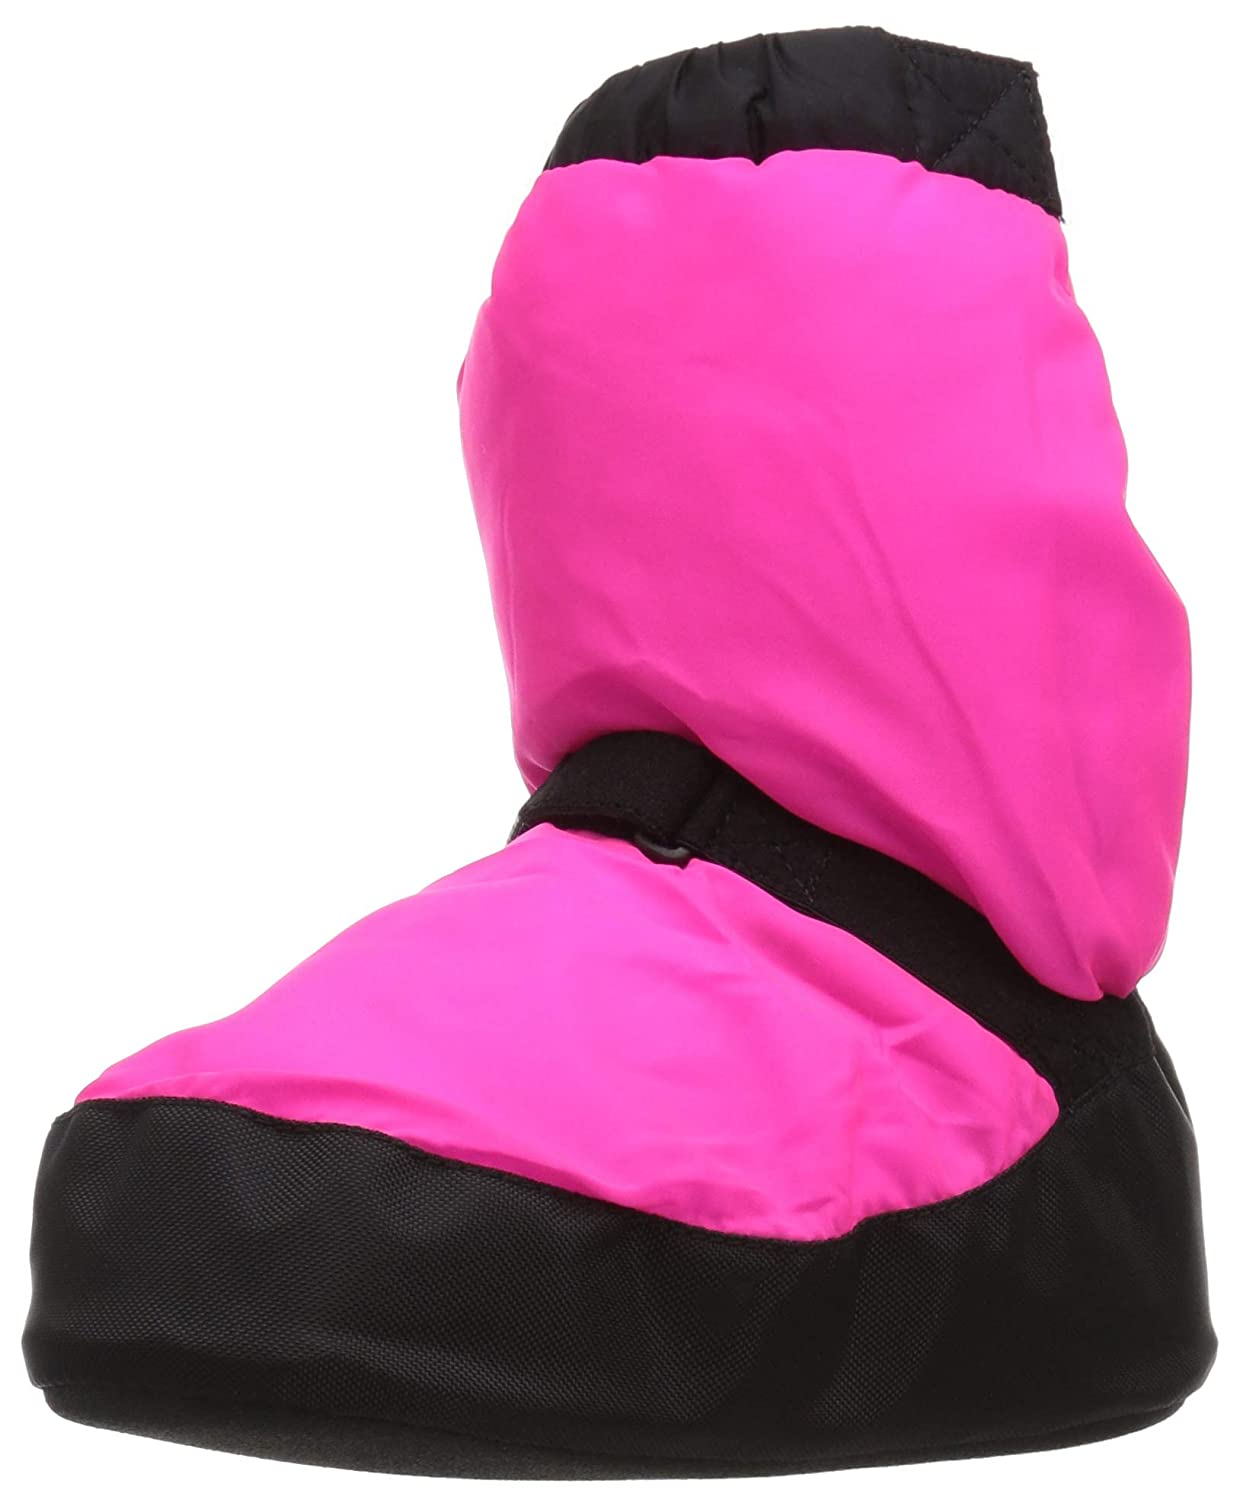 Bloch Up Warm Up Up Bootie, Warm Up Bootie Rose Fille Rose 67b707e - conorscully.space